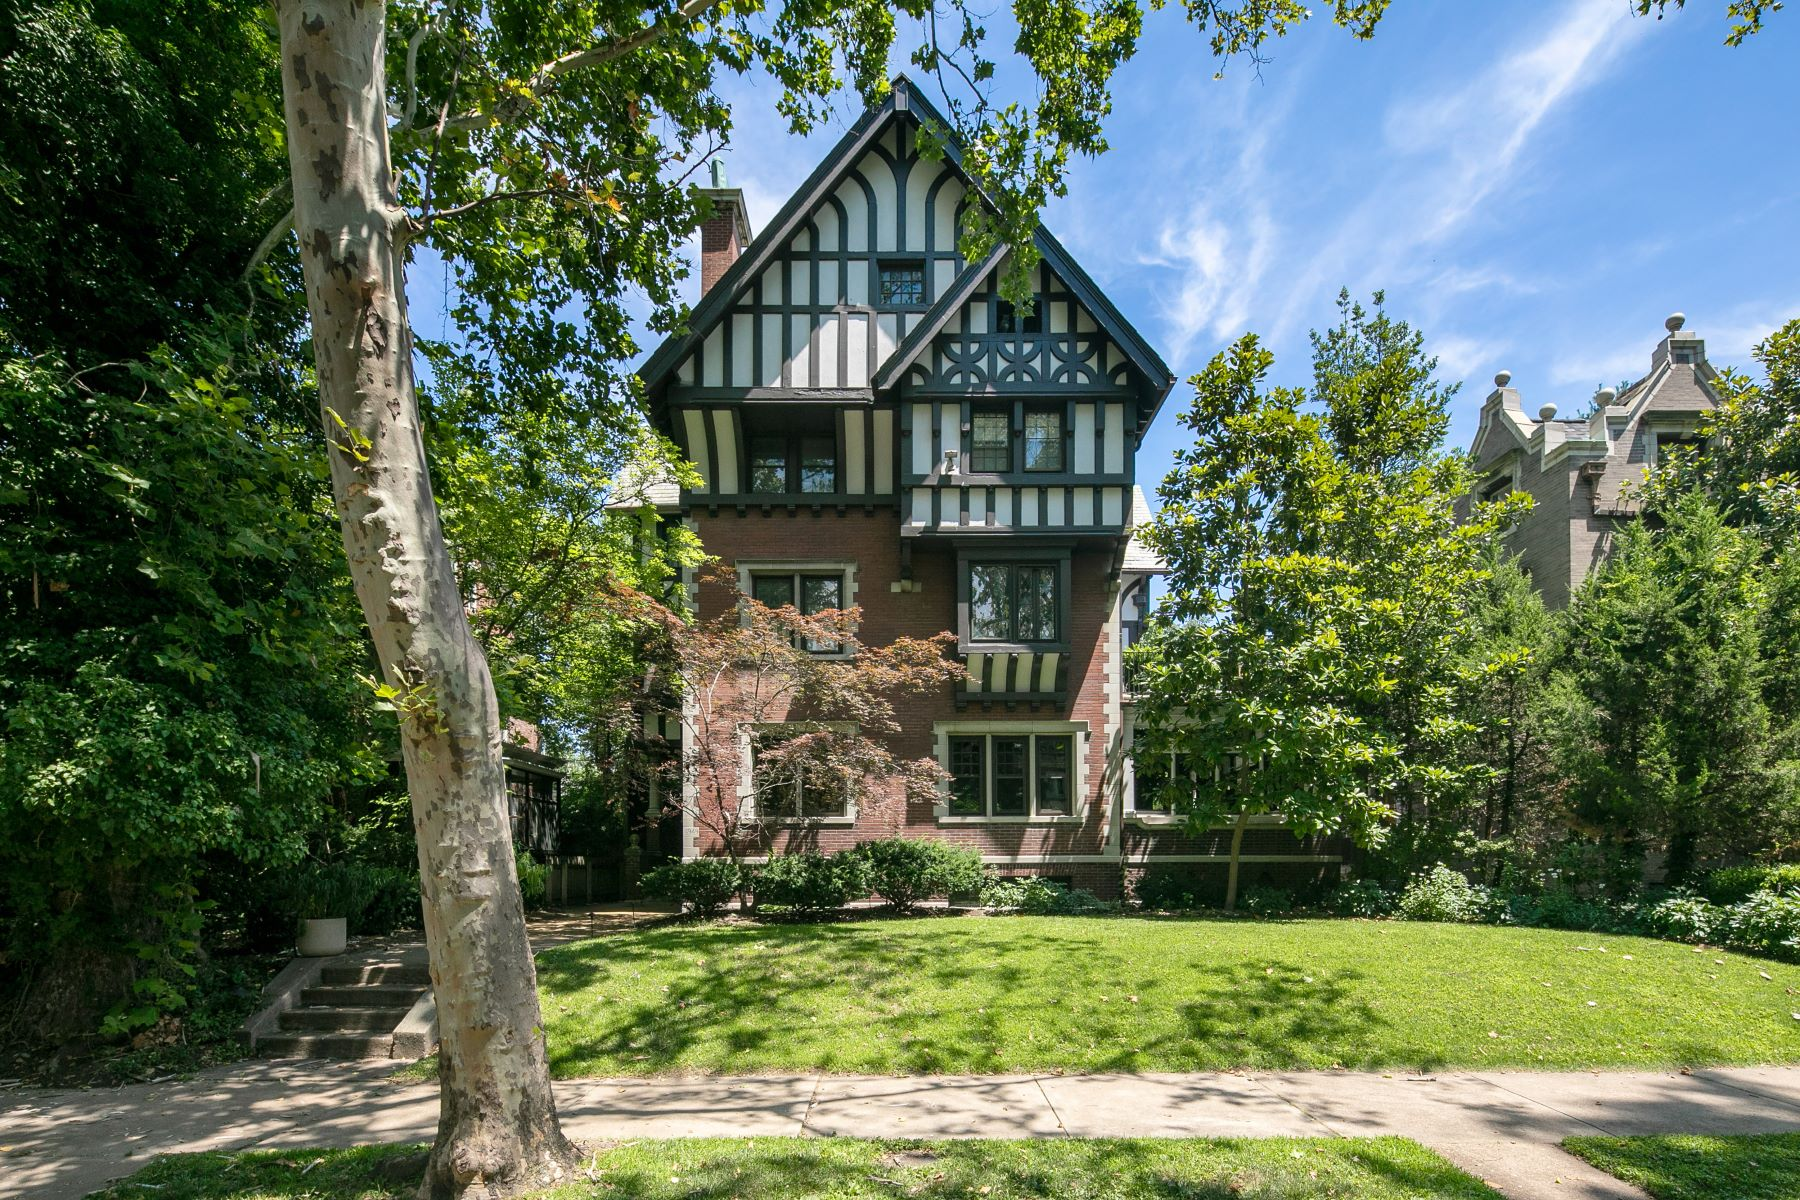 Single Family Homes for Sale at A striking blend of original historic character and modern renovations! 4949 Pershing Place St. Louis, Missouri 63108 United States